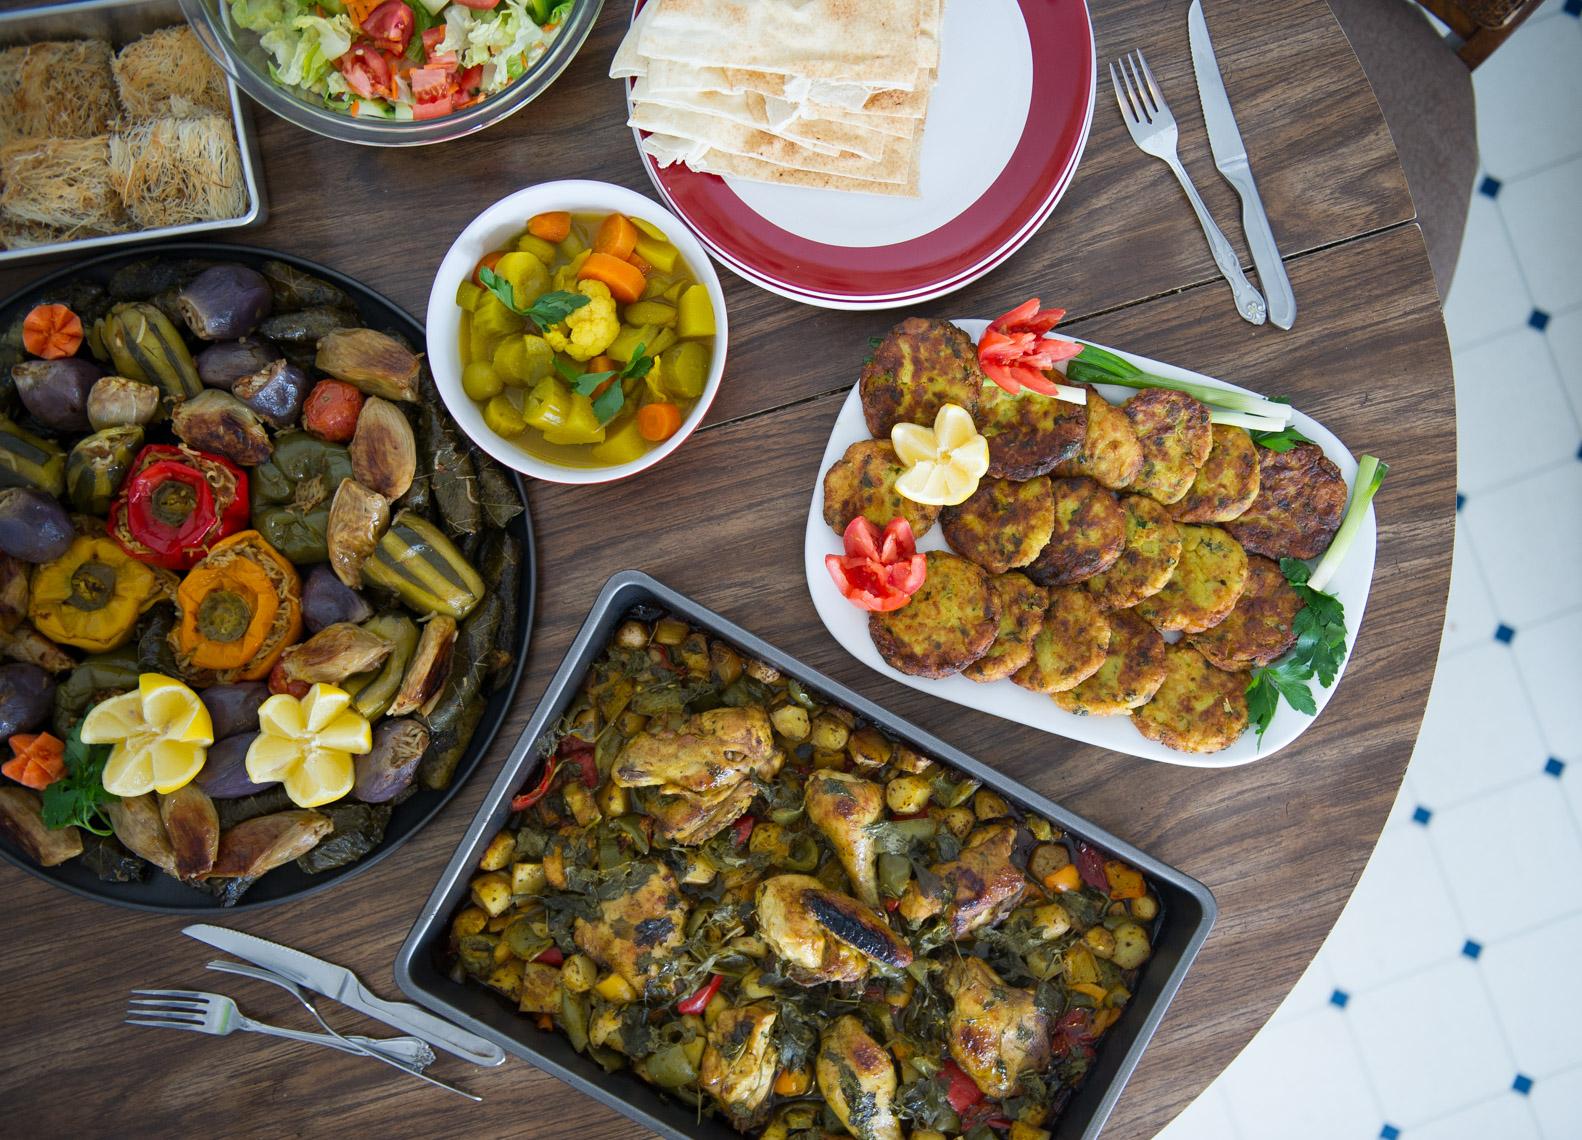 Photo by Morgan Ione Yeager, NYC Food photographer, Umi Kitchen, Iraqi food, recipe, home chef